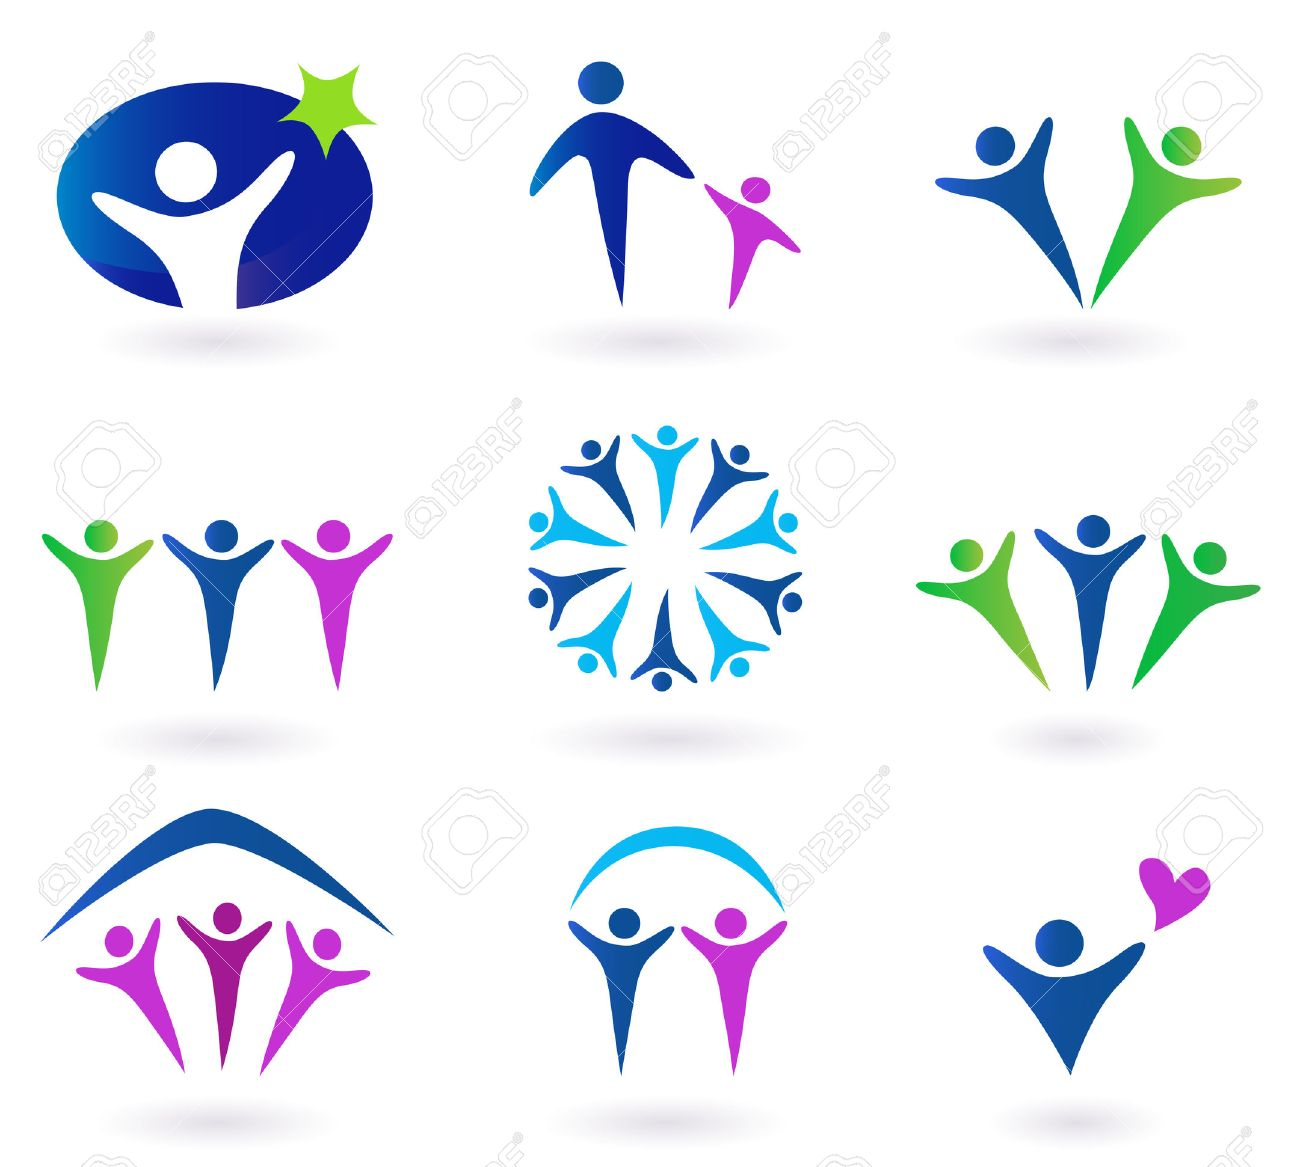 Community, network and social icons - blue, green and pink. Community, network and social icon set. Collection of 9 design elements inspired by people, family, love and togetherness. Perfect use for websites, magazines and brochures. Stock Vector - 6914656